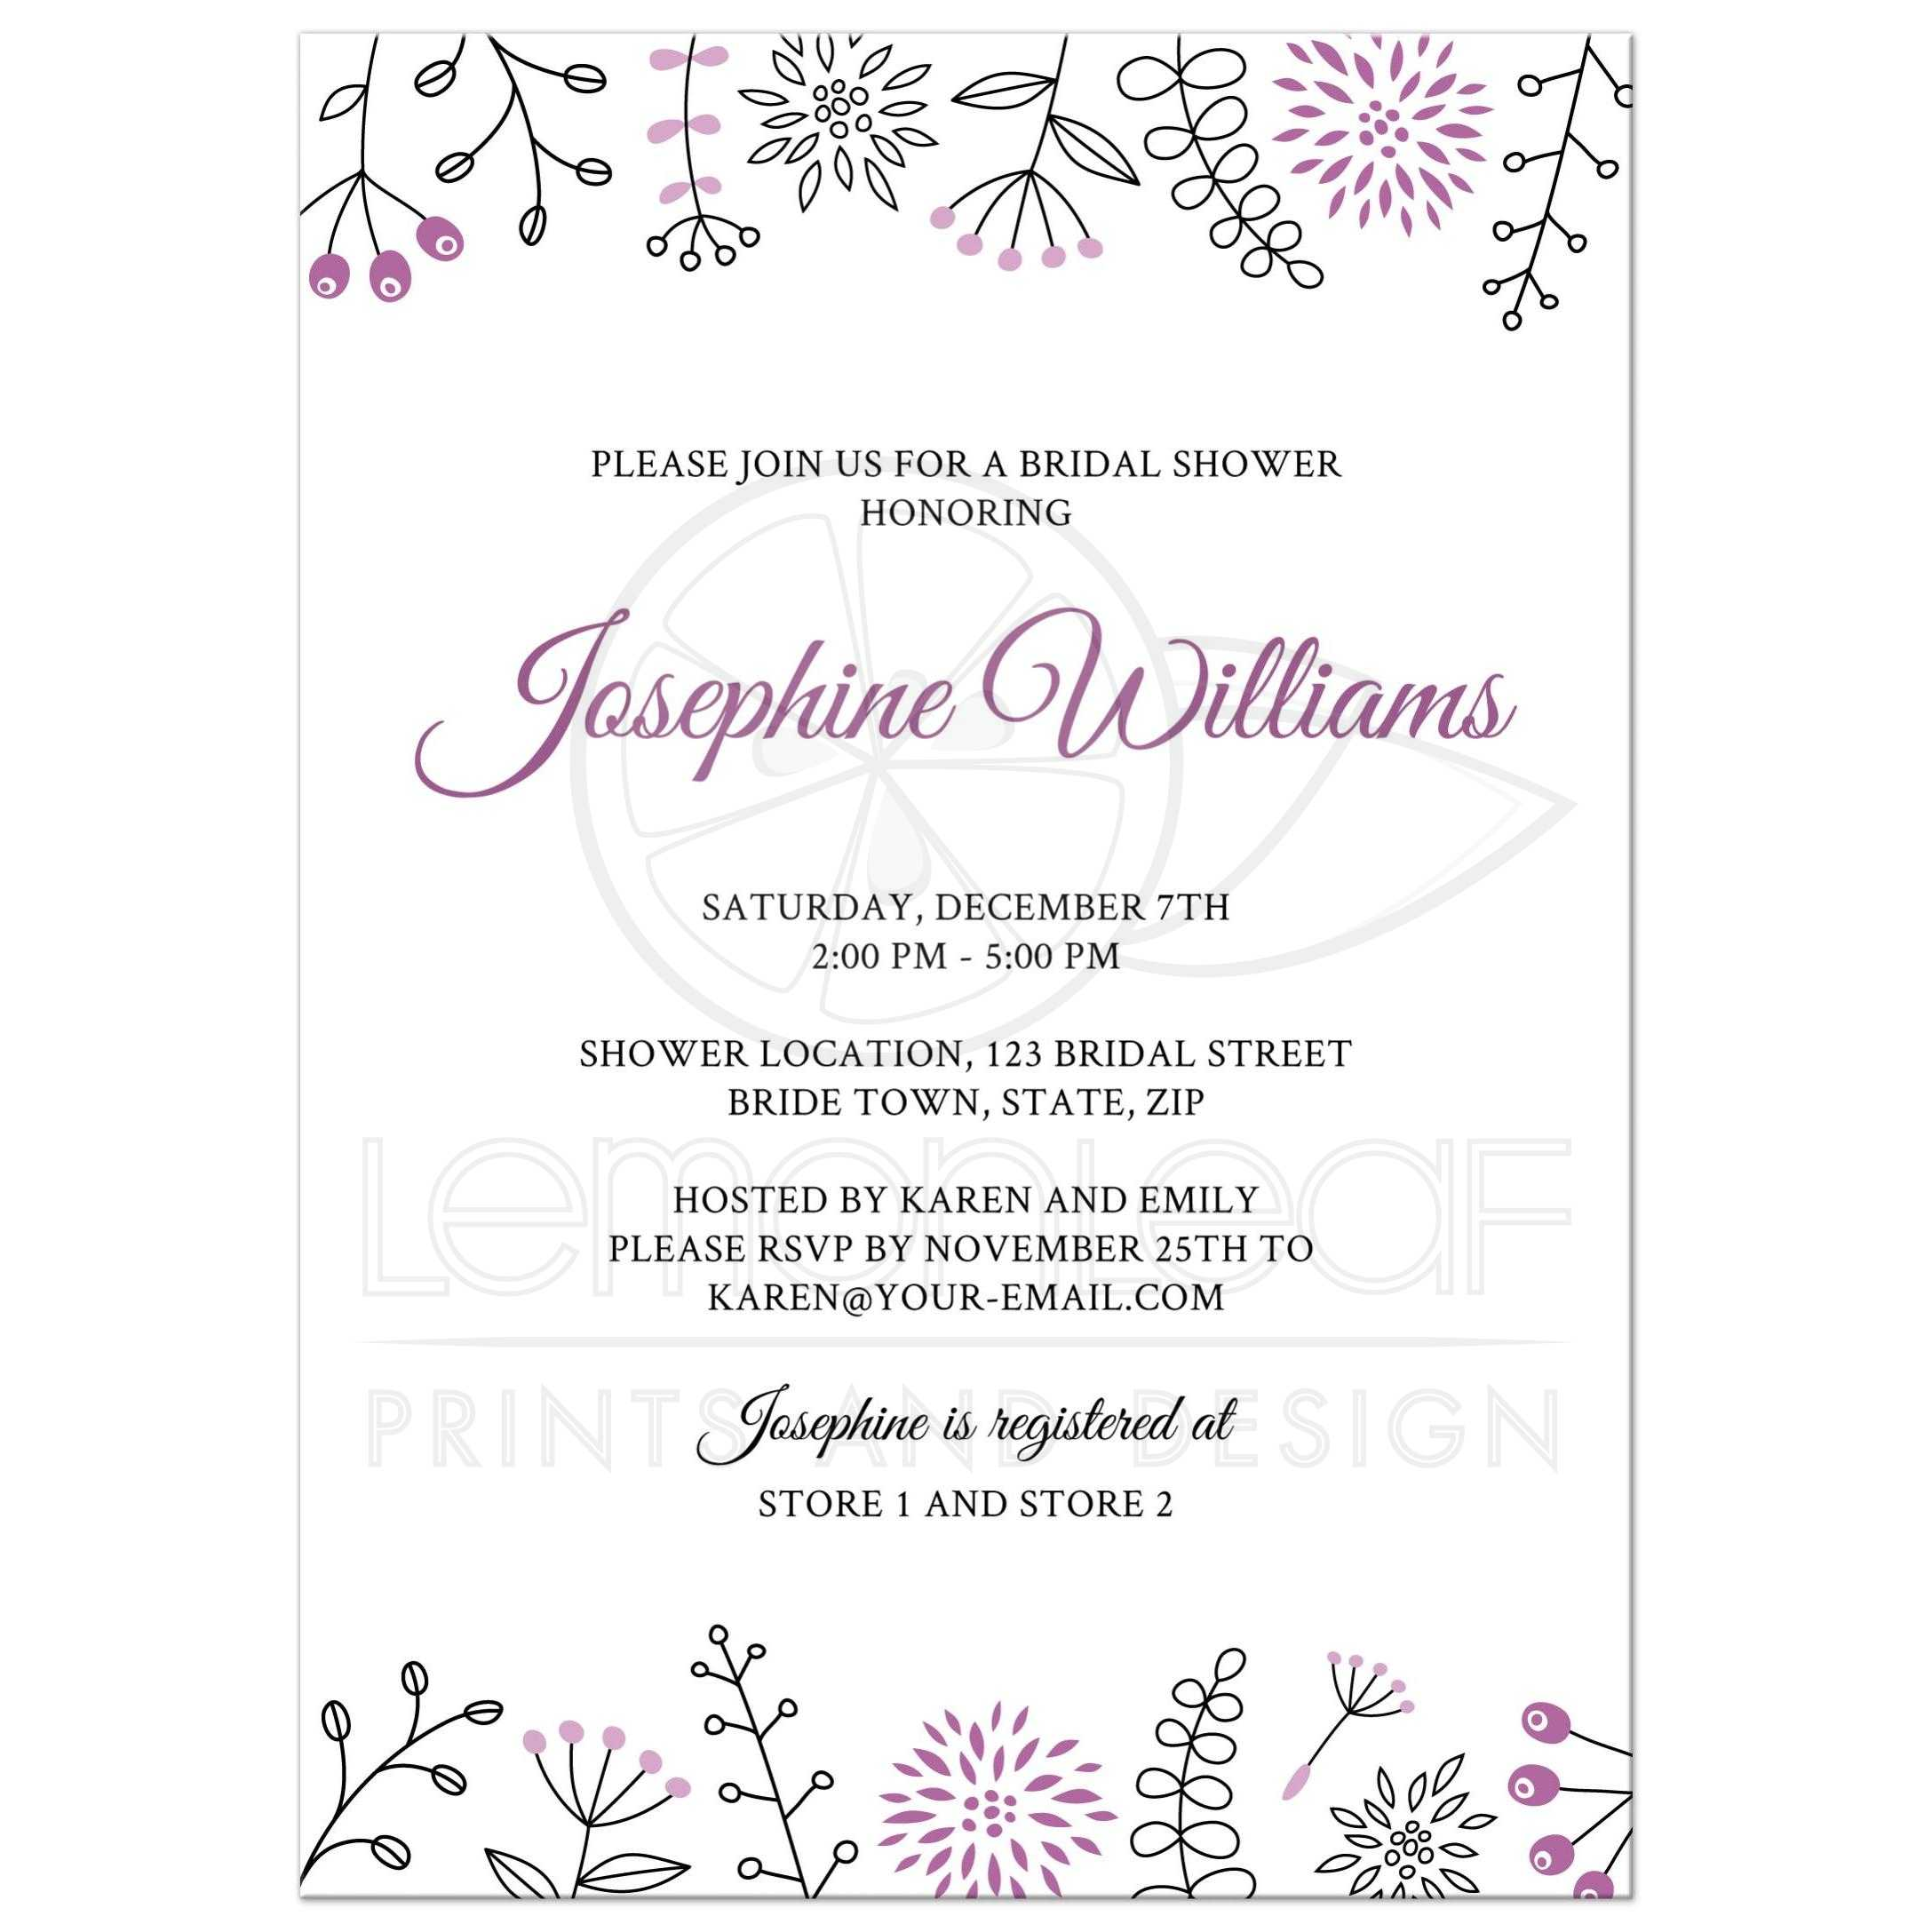 invitations wedding elegant party after shower new wording tea invitation of bridal for